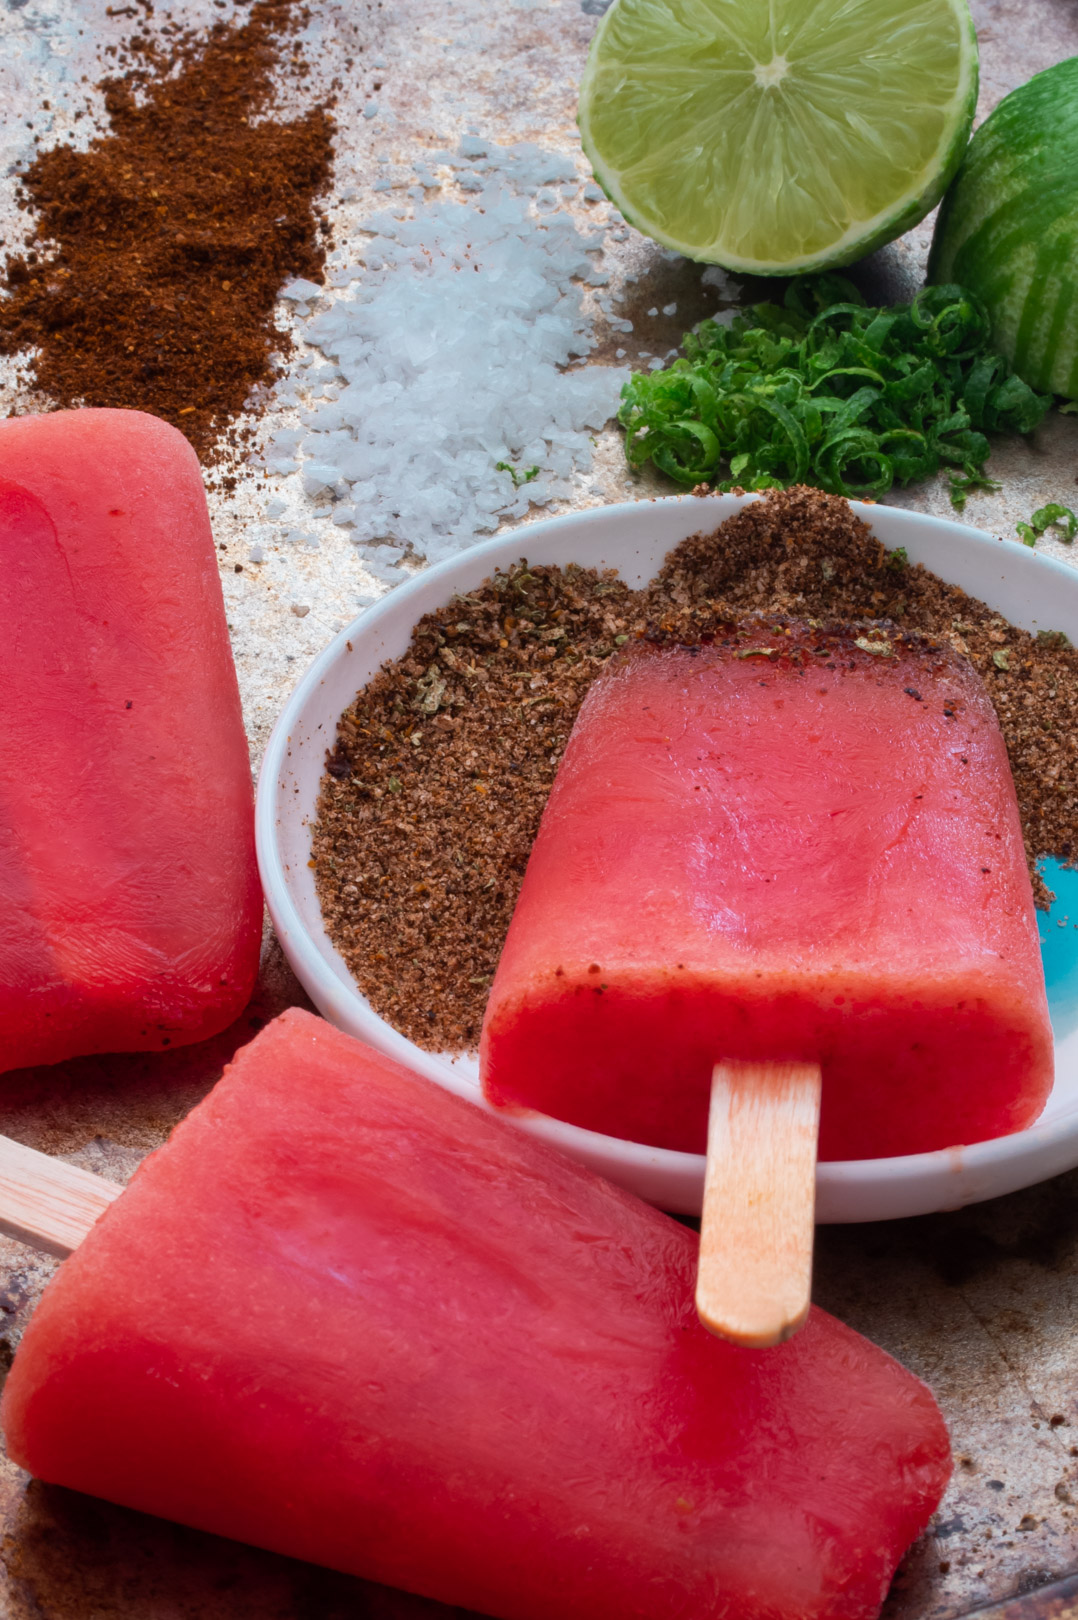 Watermelon paletas with chili-lime salt: from 45 degrees